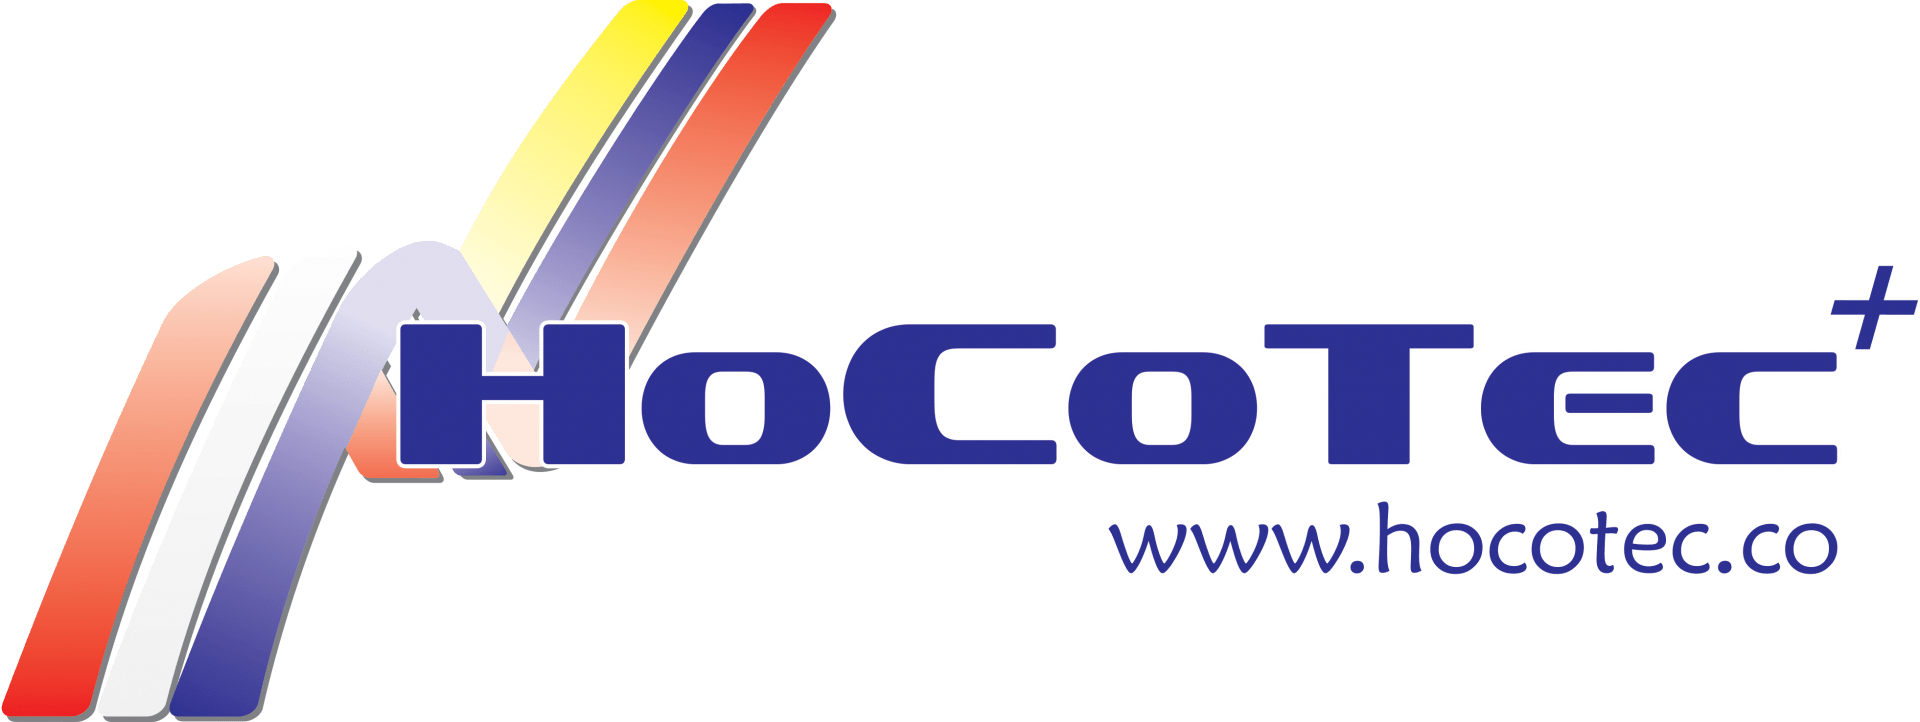 https://www.twobrands.nl/wp-content/uploads/hocotec-logo-HIGHres.png